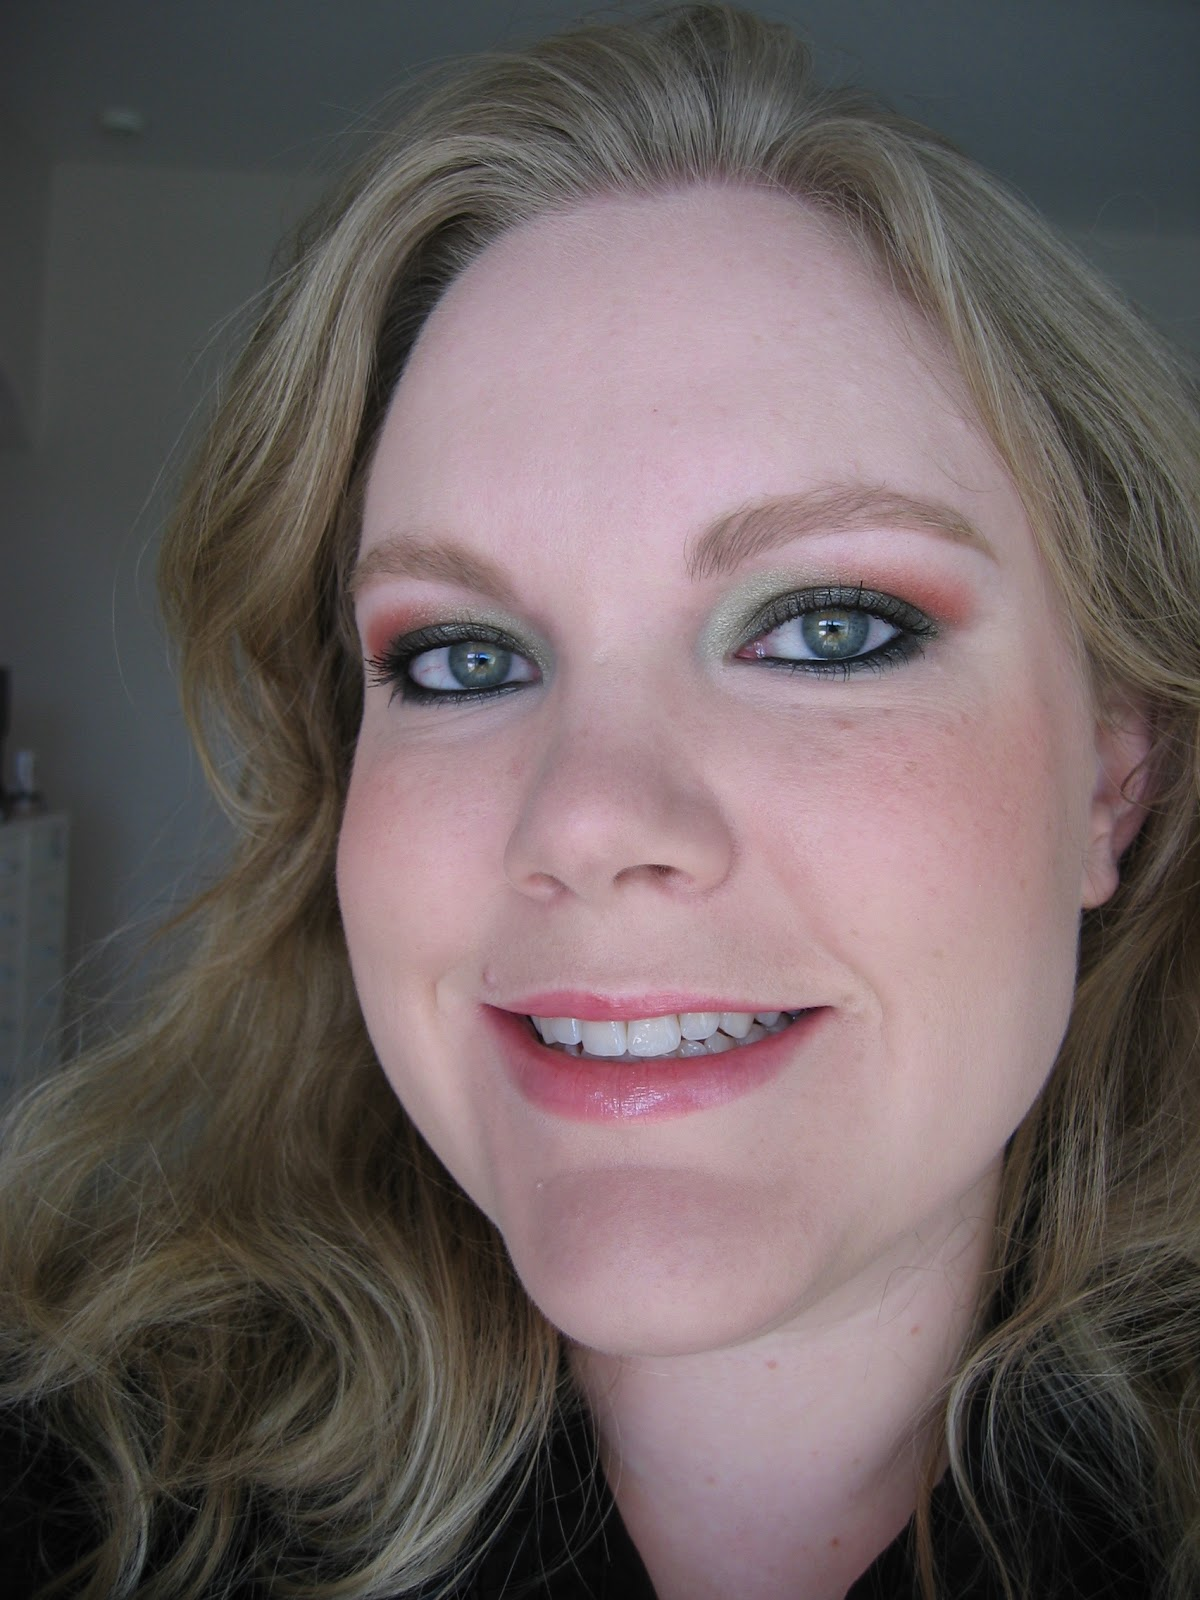 Pretty In Pink 10 Pink Makeup Looks With Voluminous Curly: DizzyMakeup: Ugly-Pretty